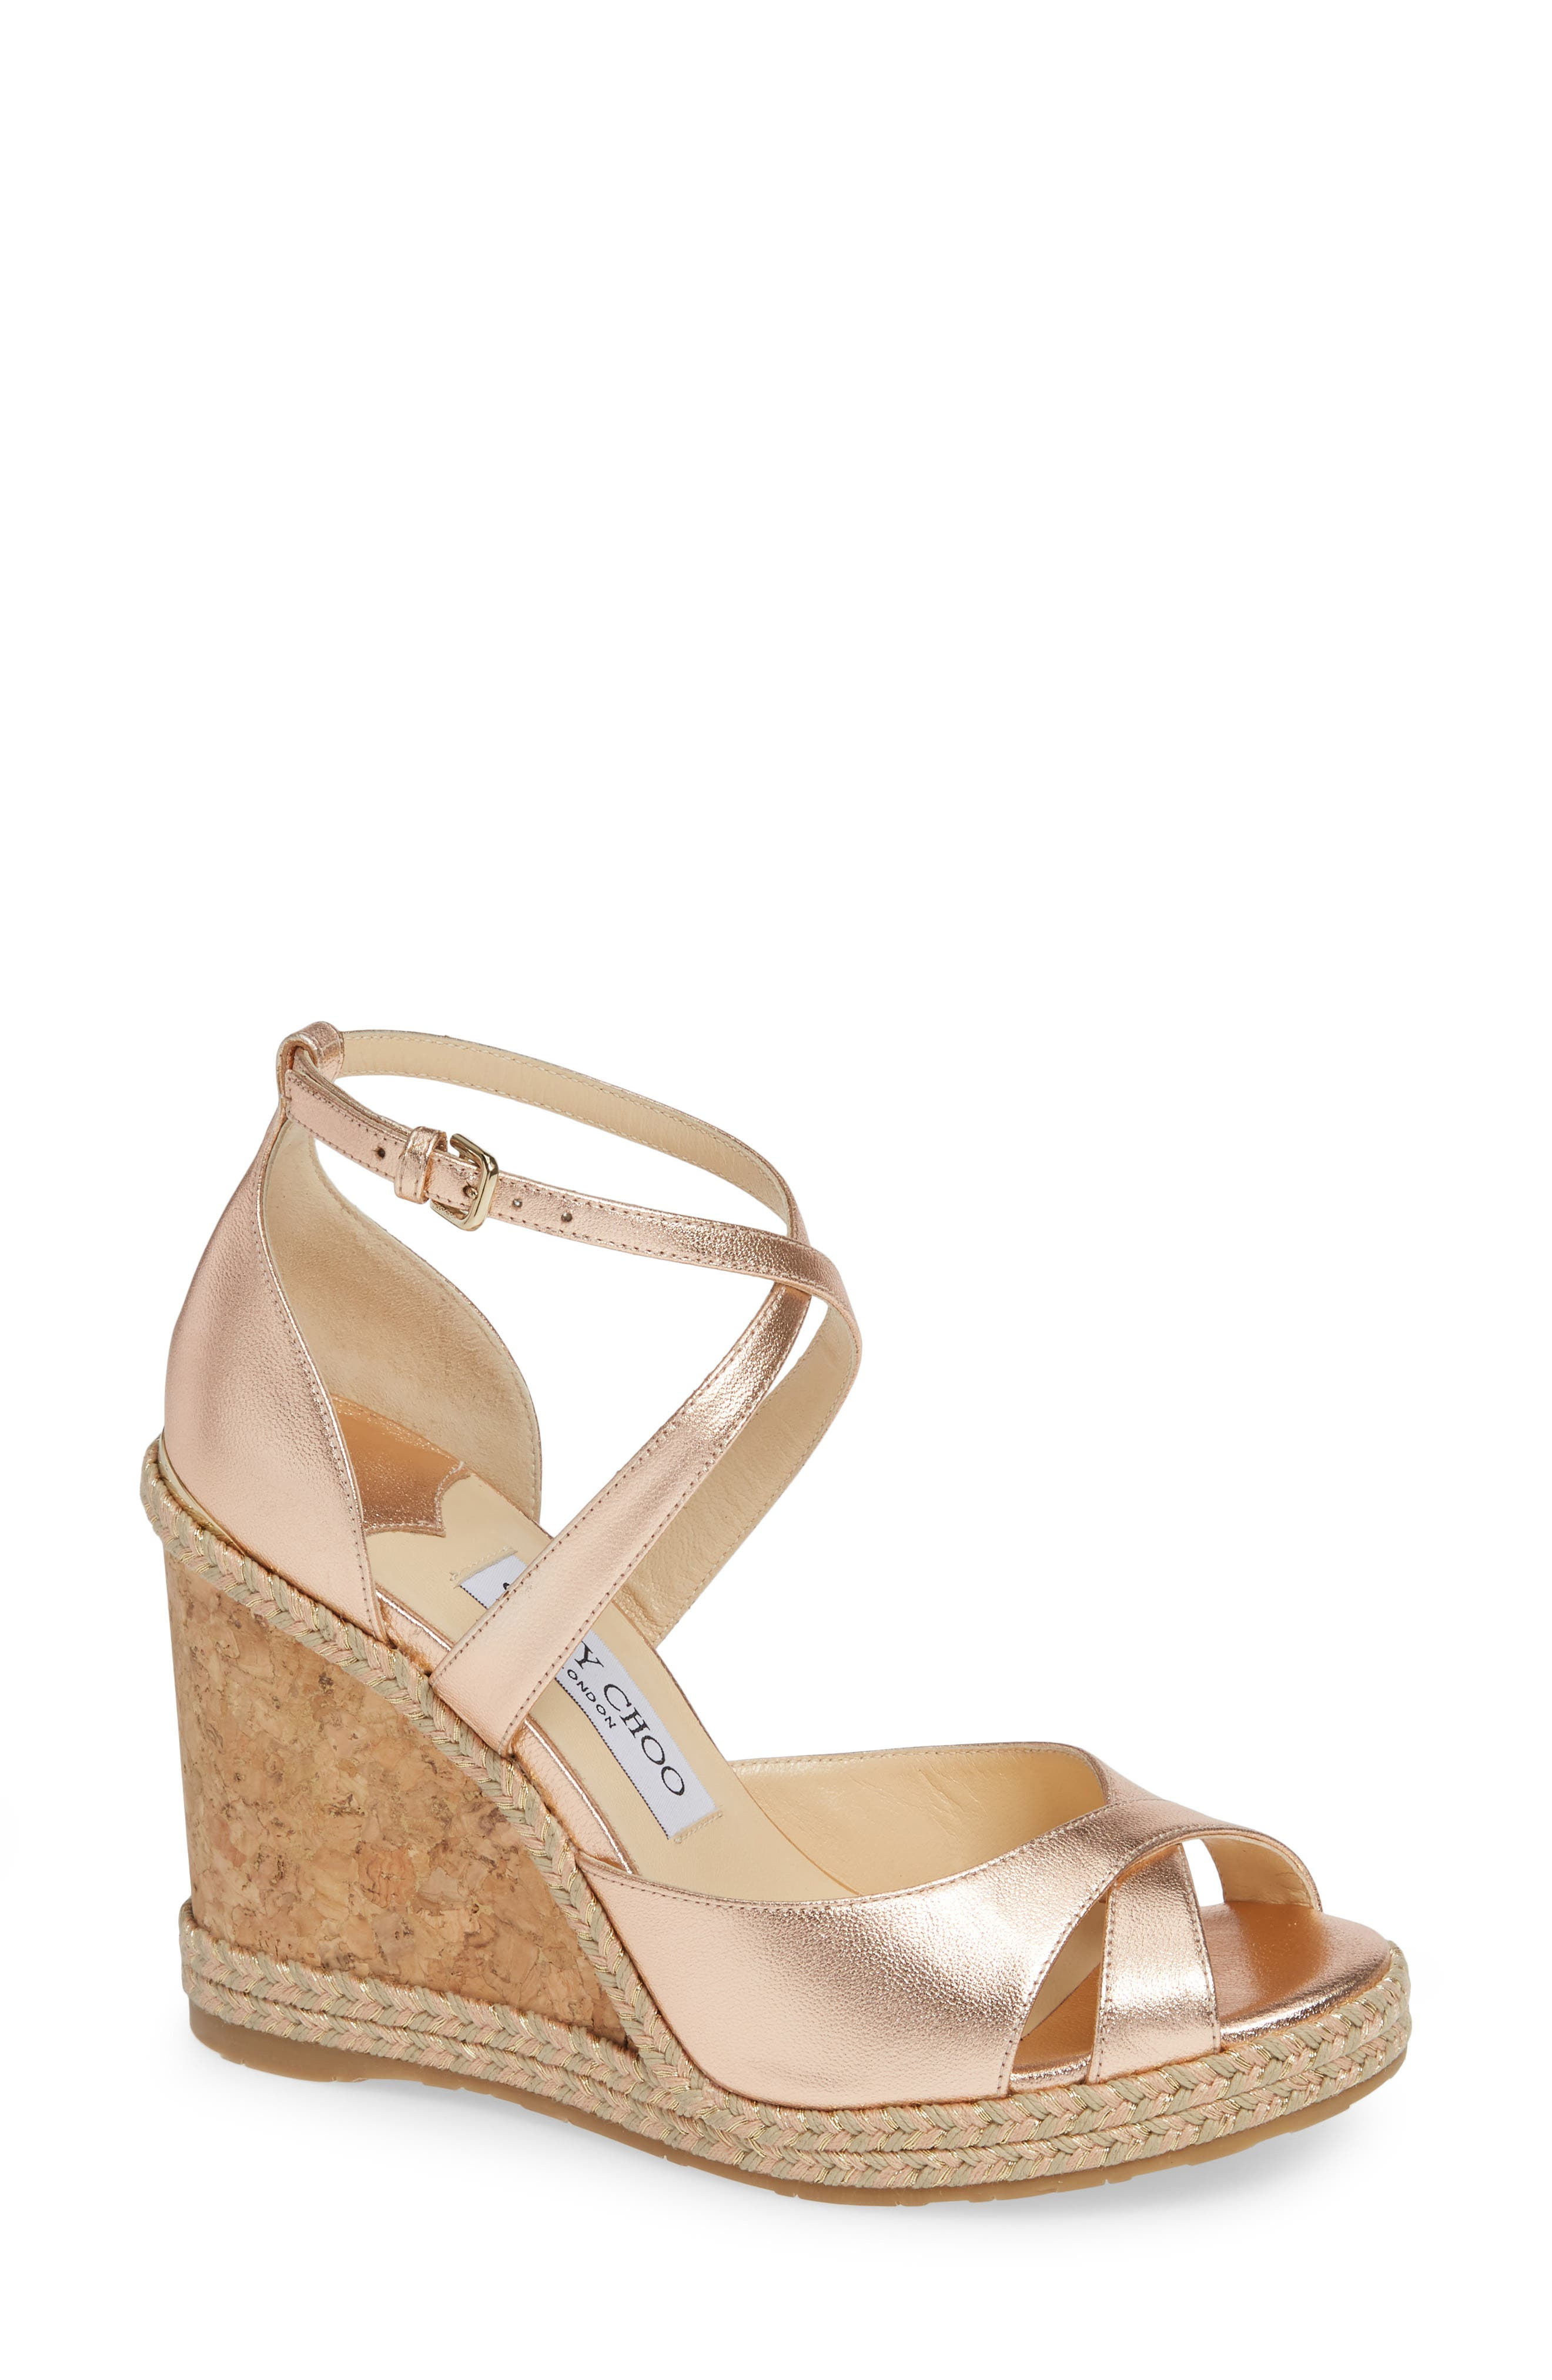 6154ded7ad02 Jimmy Choo Wedges for Women